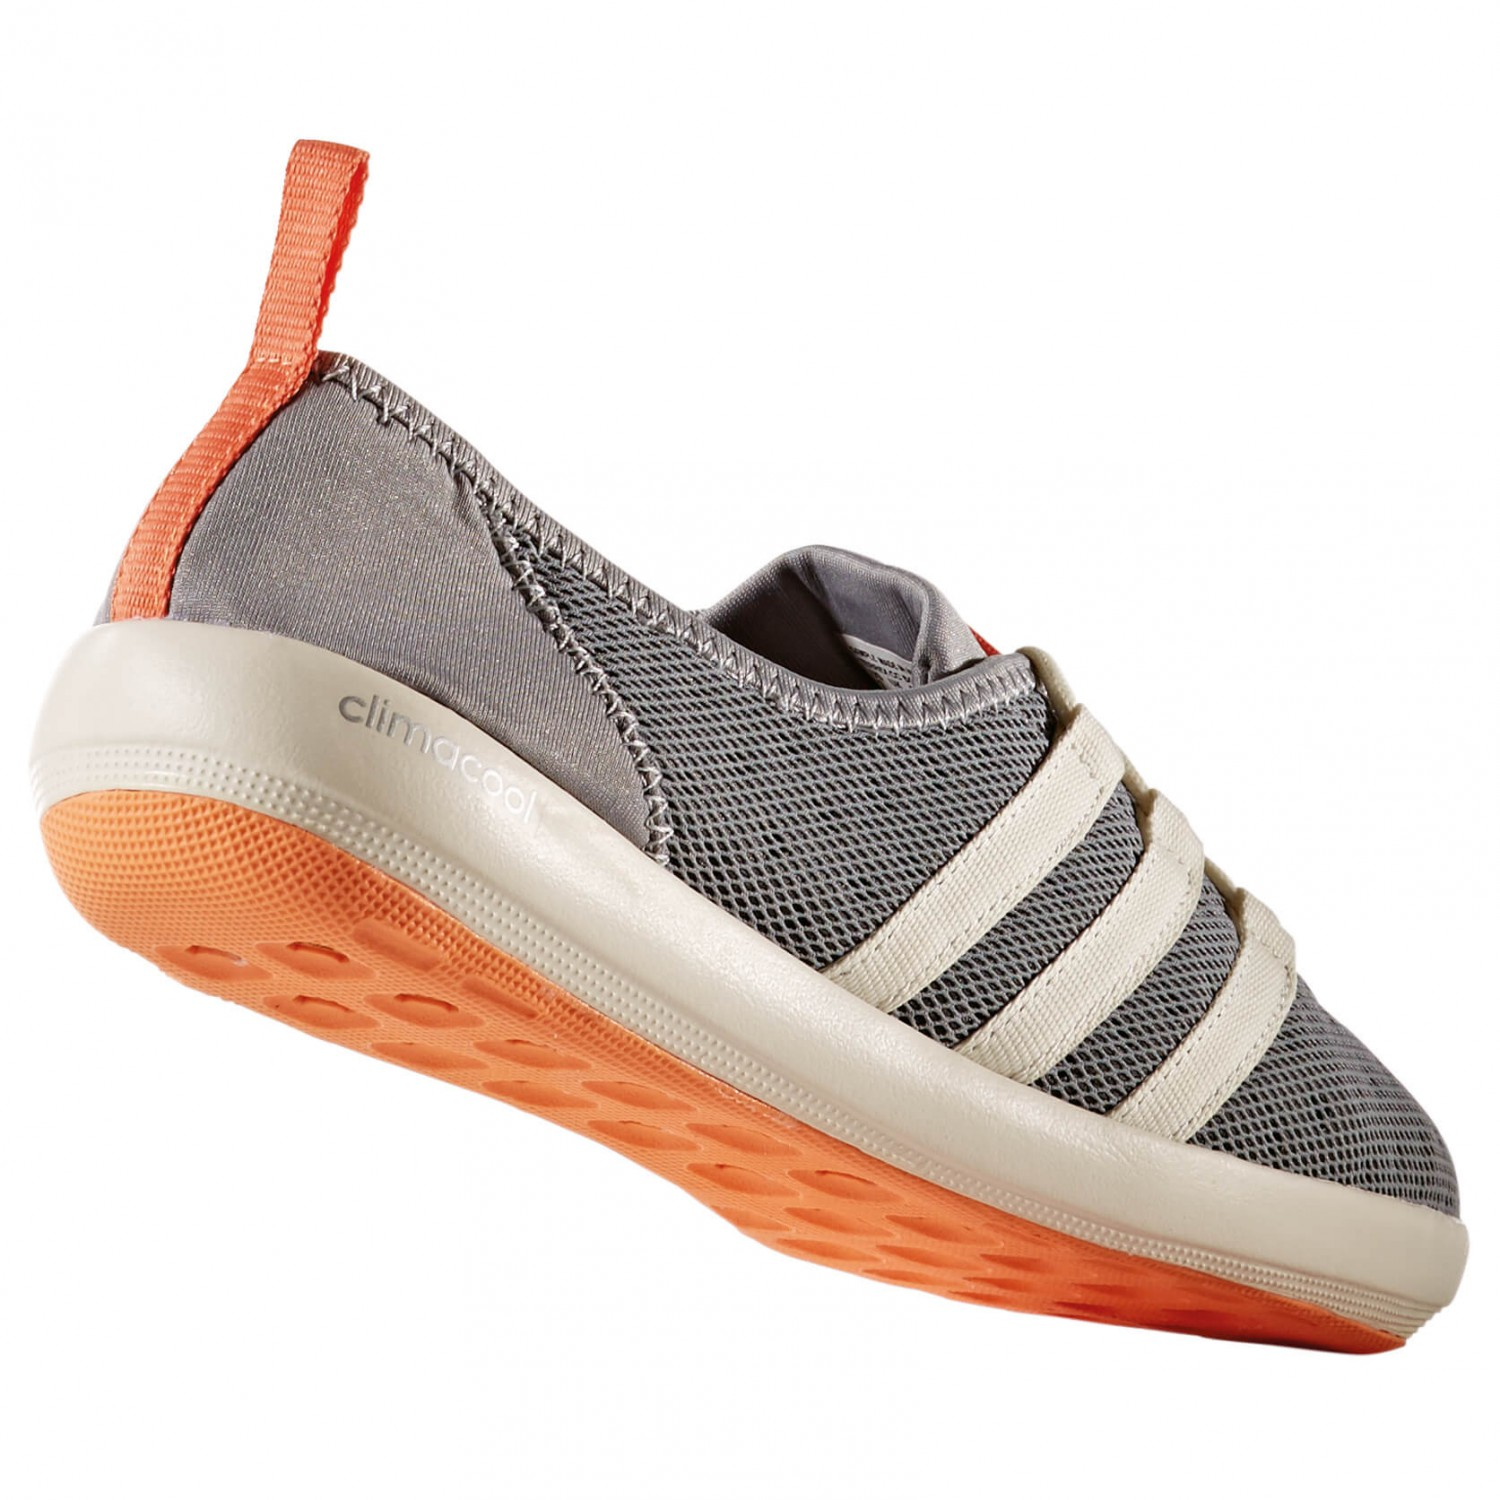 Adidas Climacool Boat Sleek Shoes Women